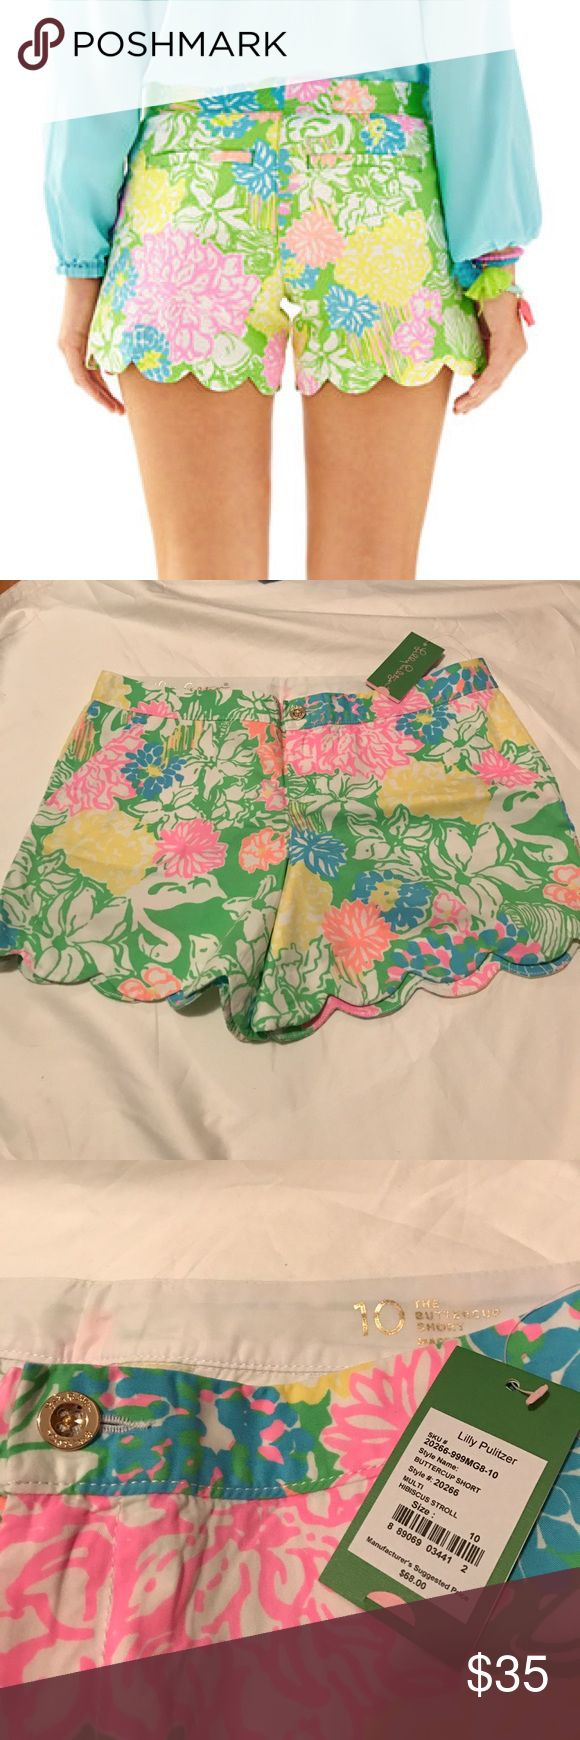 "Lilly Pulitzer Buttercup Shorts in Hibiscus Stroll A scalloped short is the perfect way to update your collection. We love the Buttercup Shorts because of the fit and feel. They are 5 inch shorts just like the beloved Callahan's but this style has a scalloped hem; a chic and girly addition. 5"" Inseam, Garment Washed, Zip Fly Short With Scallop Hem. Printed Beach Twill (100% Cotton). Machine Wash Cold. Imported. Lilly Pulitzer Shorts"